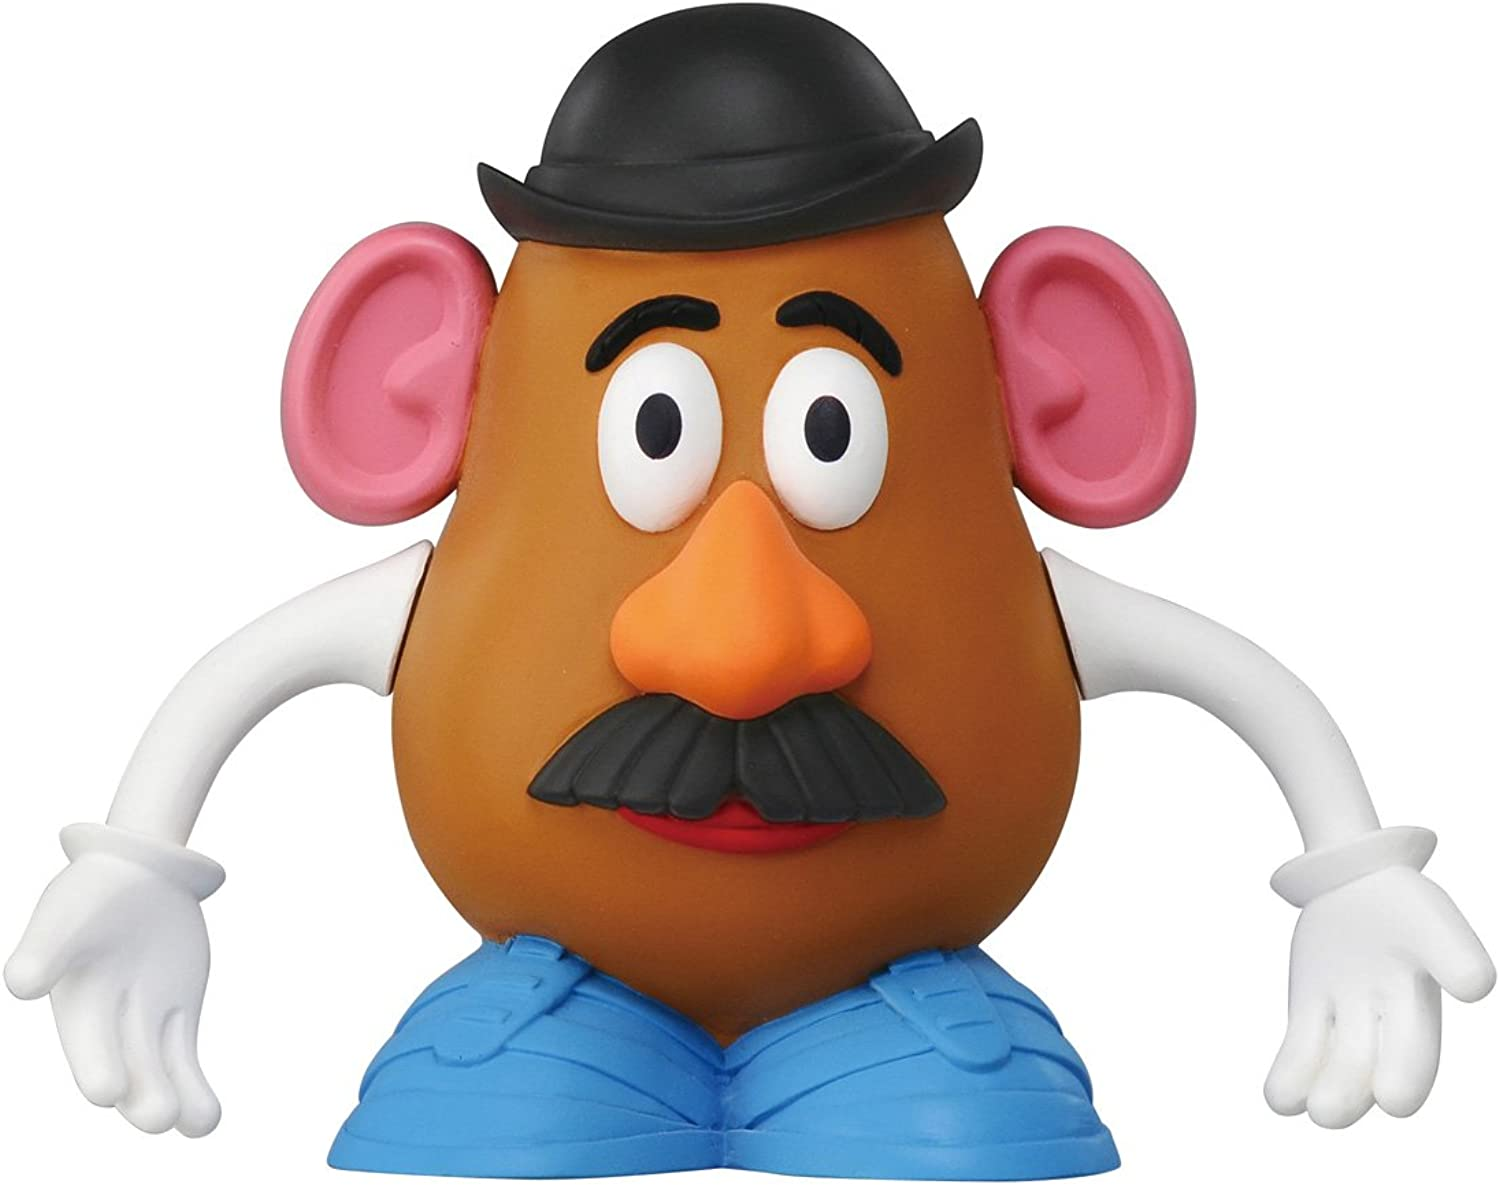 Disney Toy Story English and Japanese  Chatter Friends Mr. Potato Head